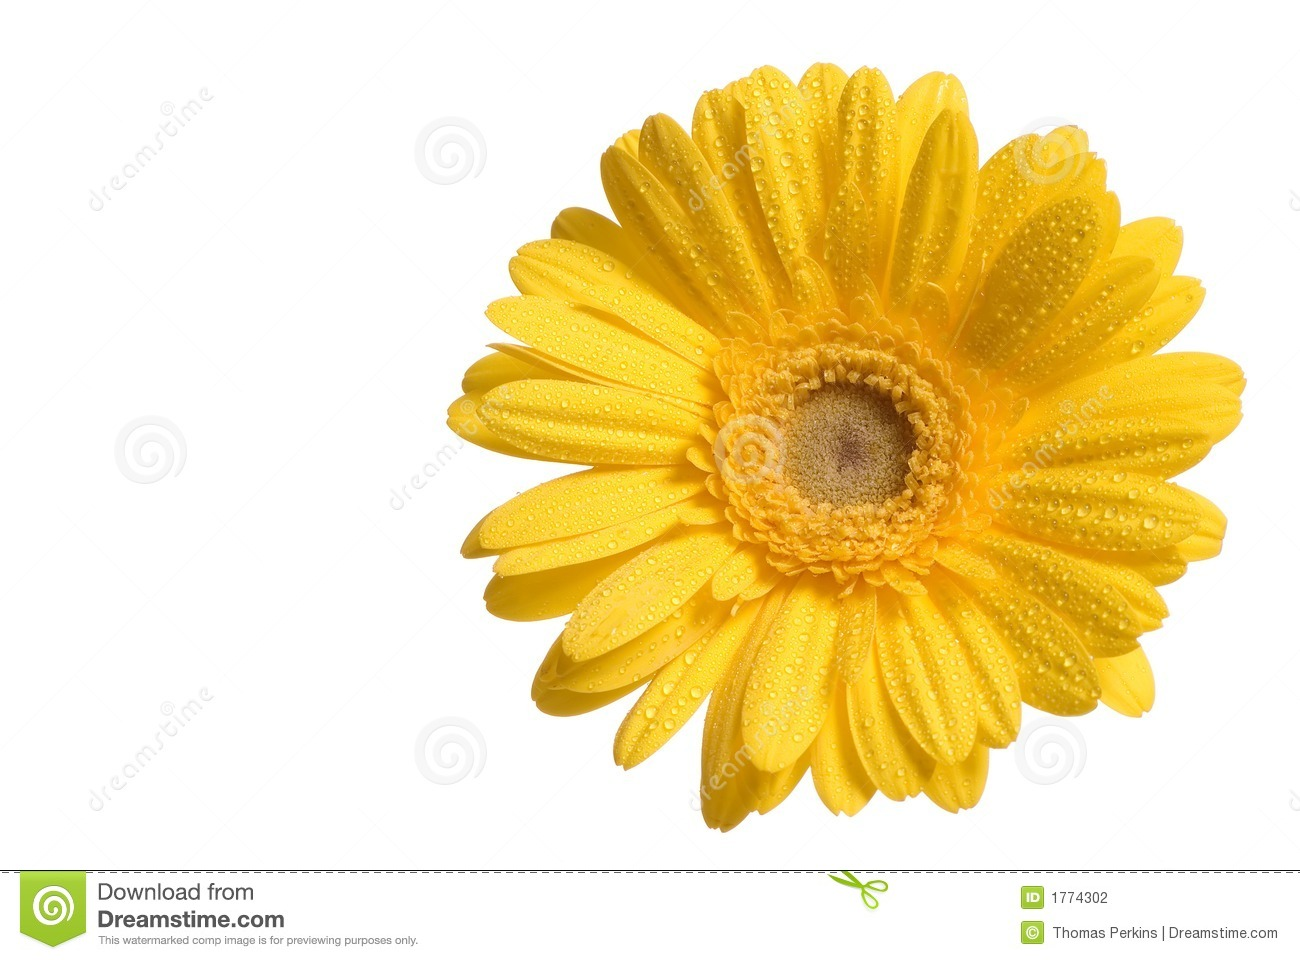 Islamic Quotes And Wallpapers Yellow Flower Photo 9295 Hdwpro